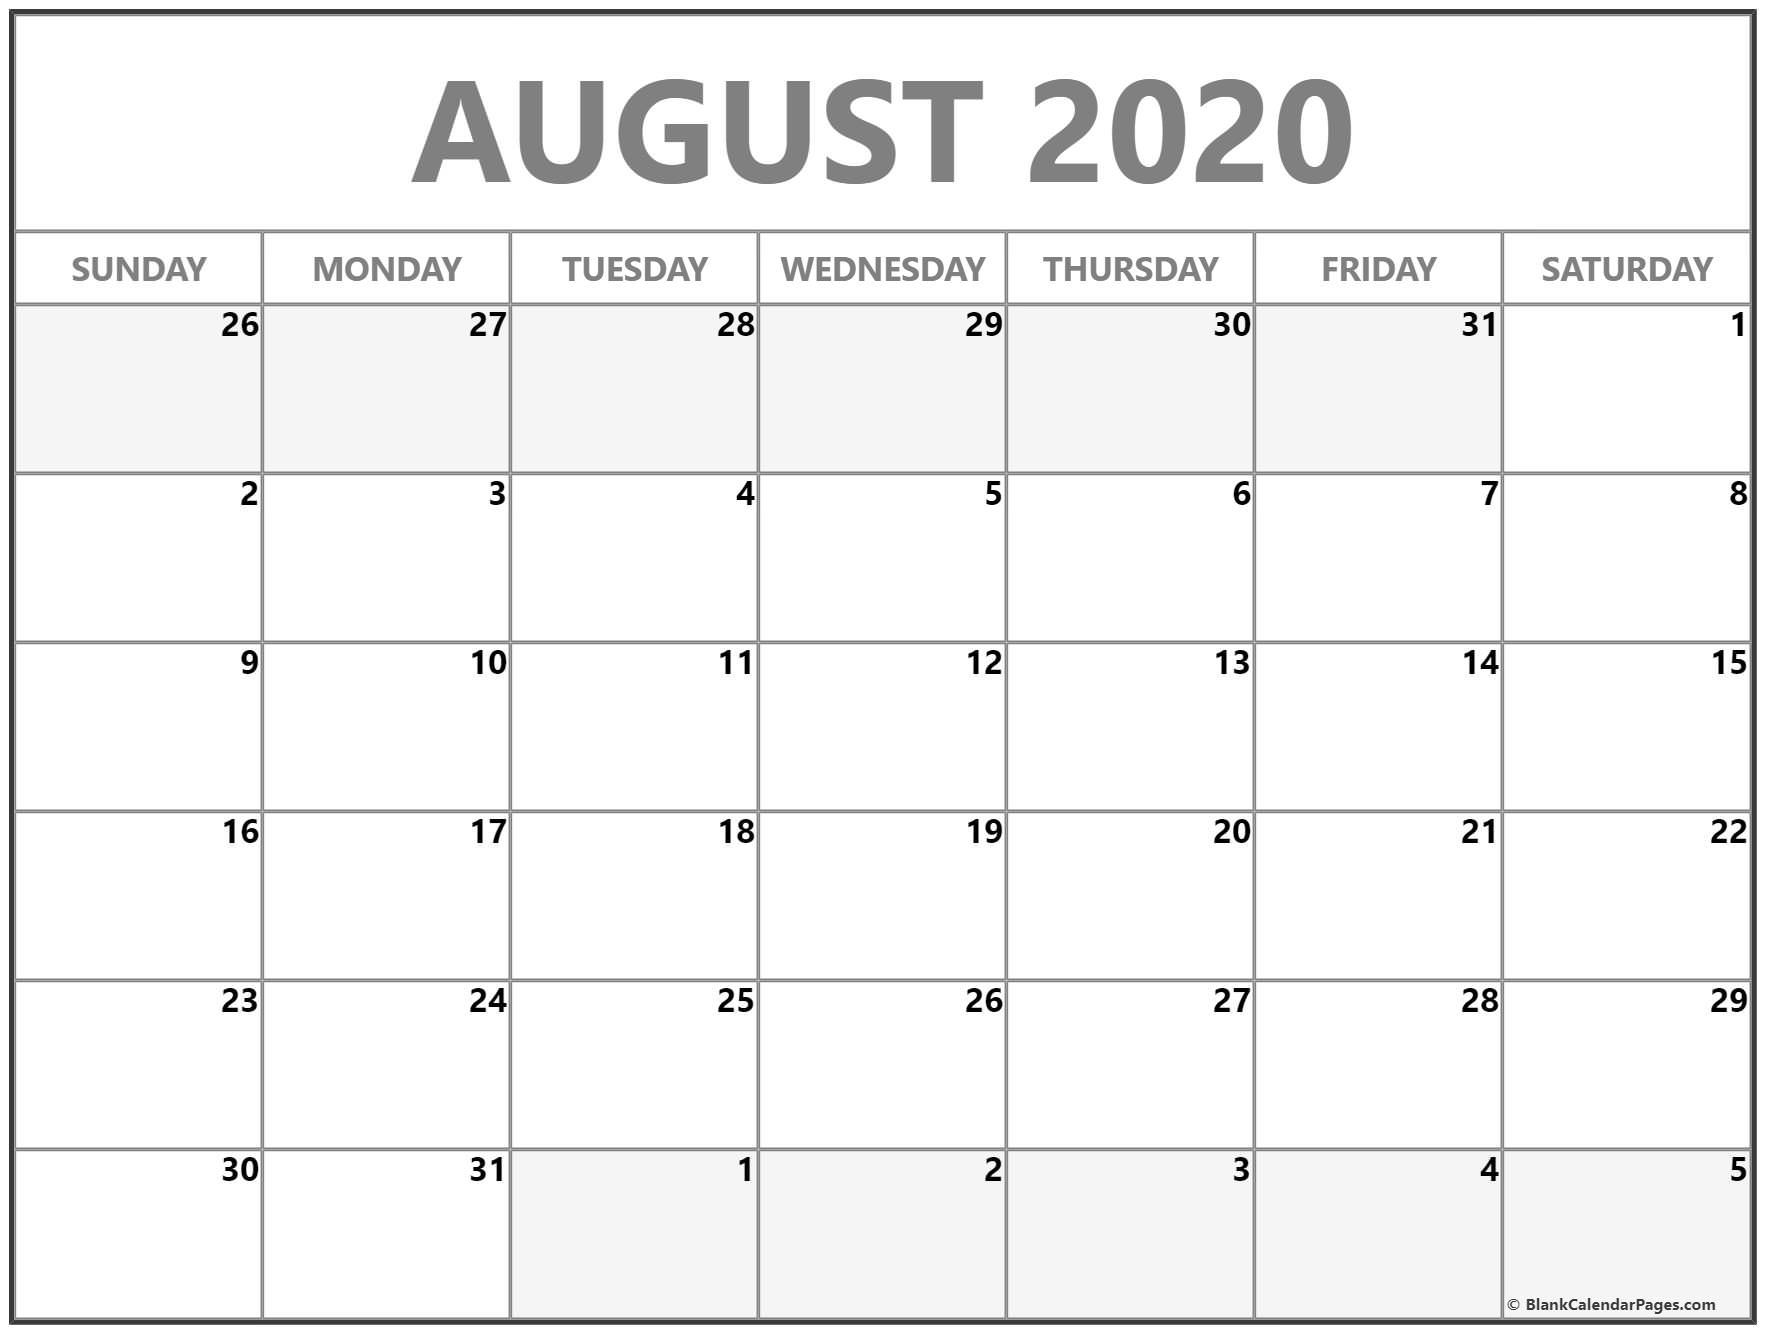 August 2020 Calendar | Free Printable Monthly Calendars with Blank Calendar Template For August